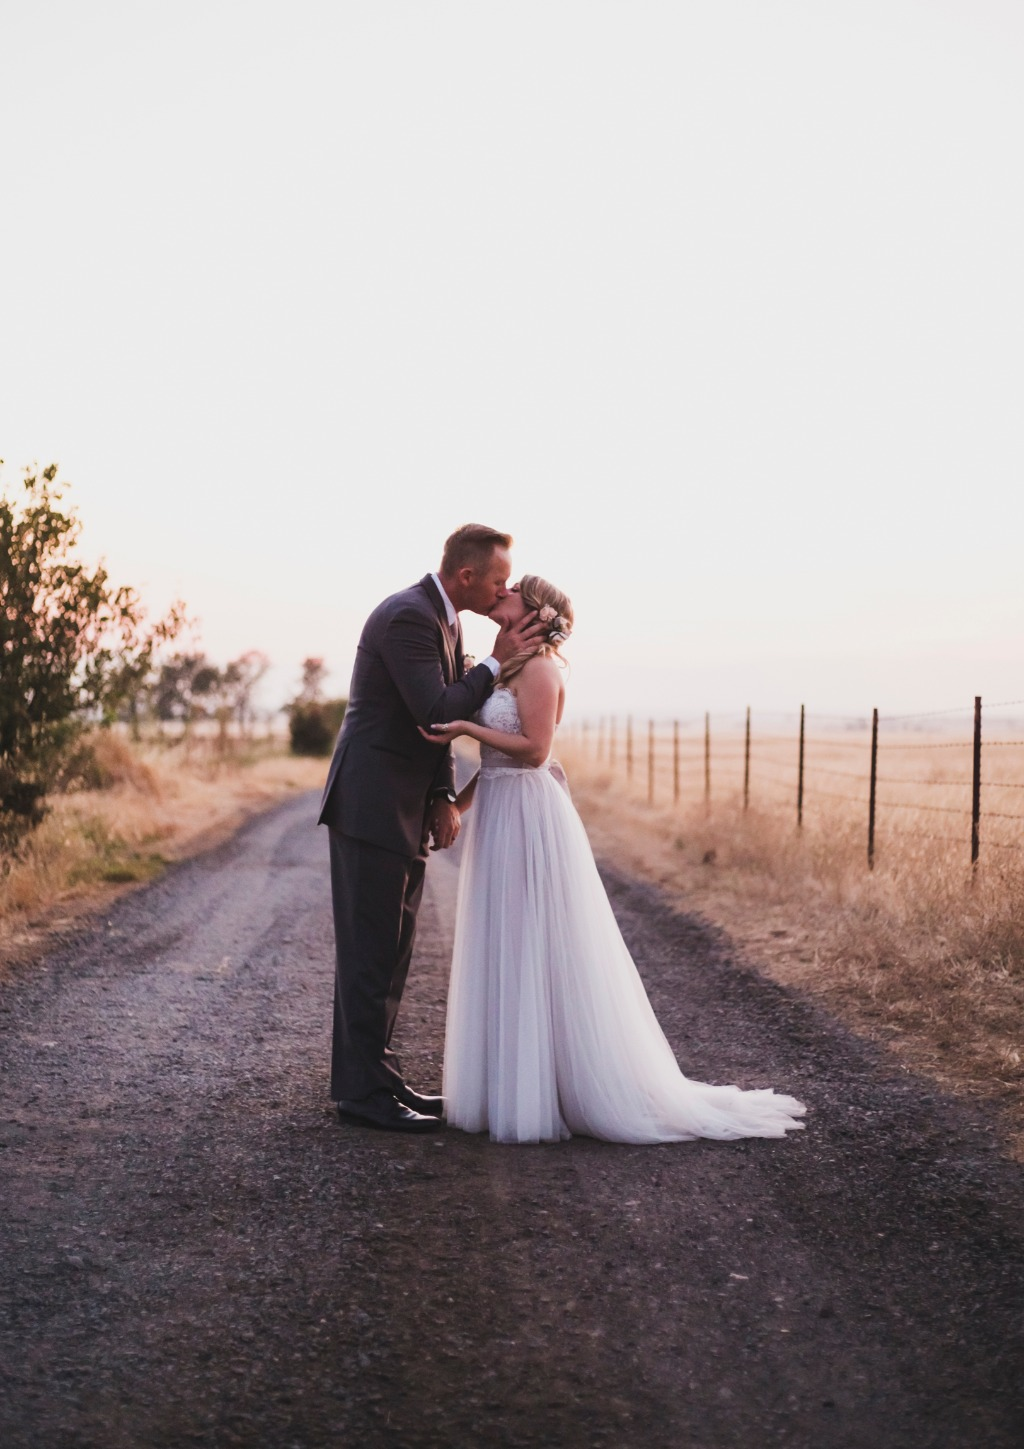 Sunset photos with the bride & groom at White Ranch Events in Chico Ca